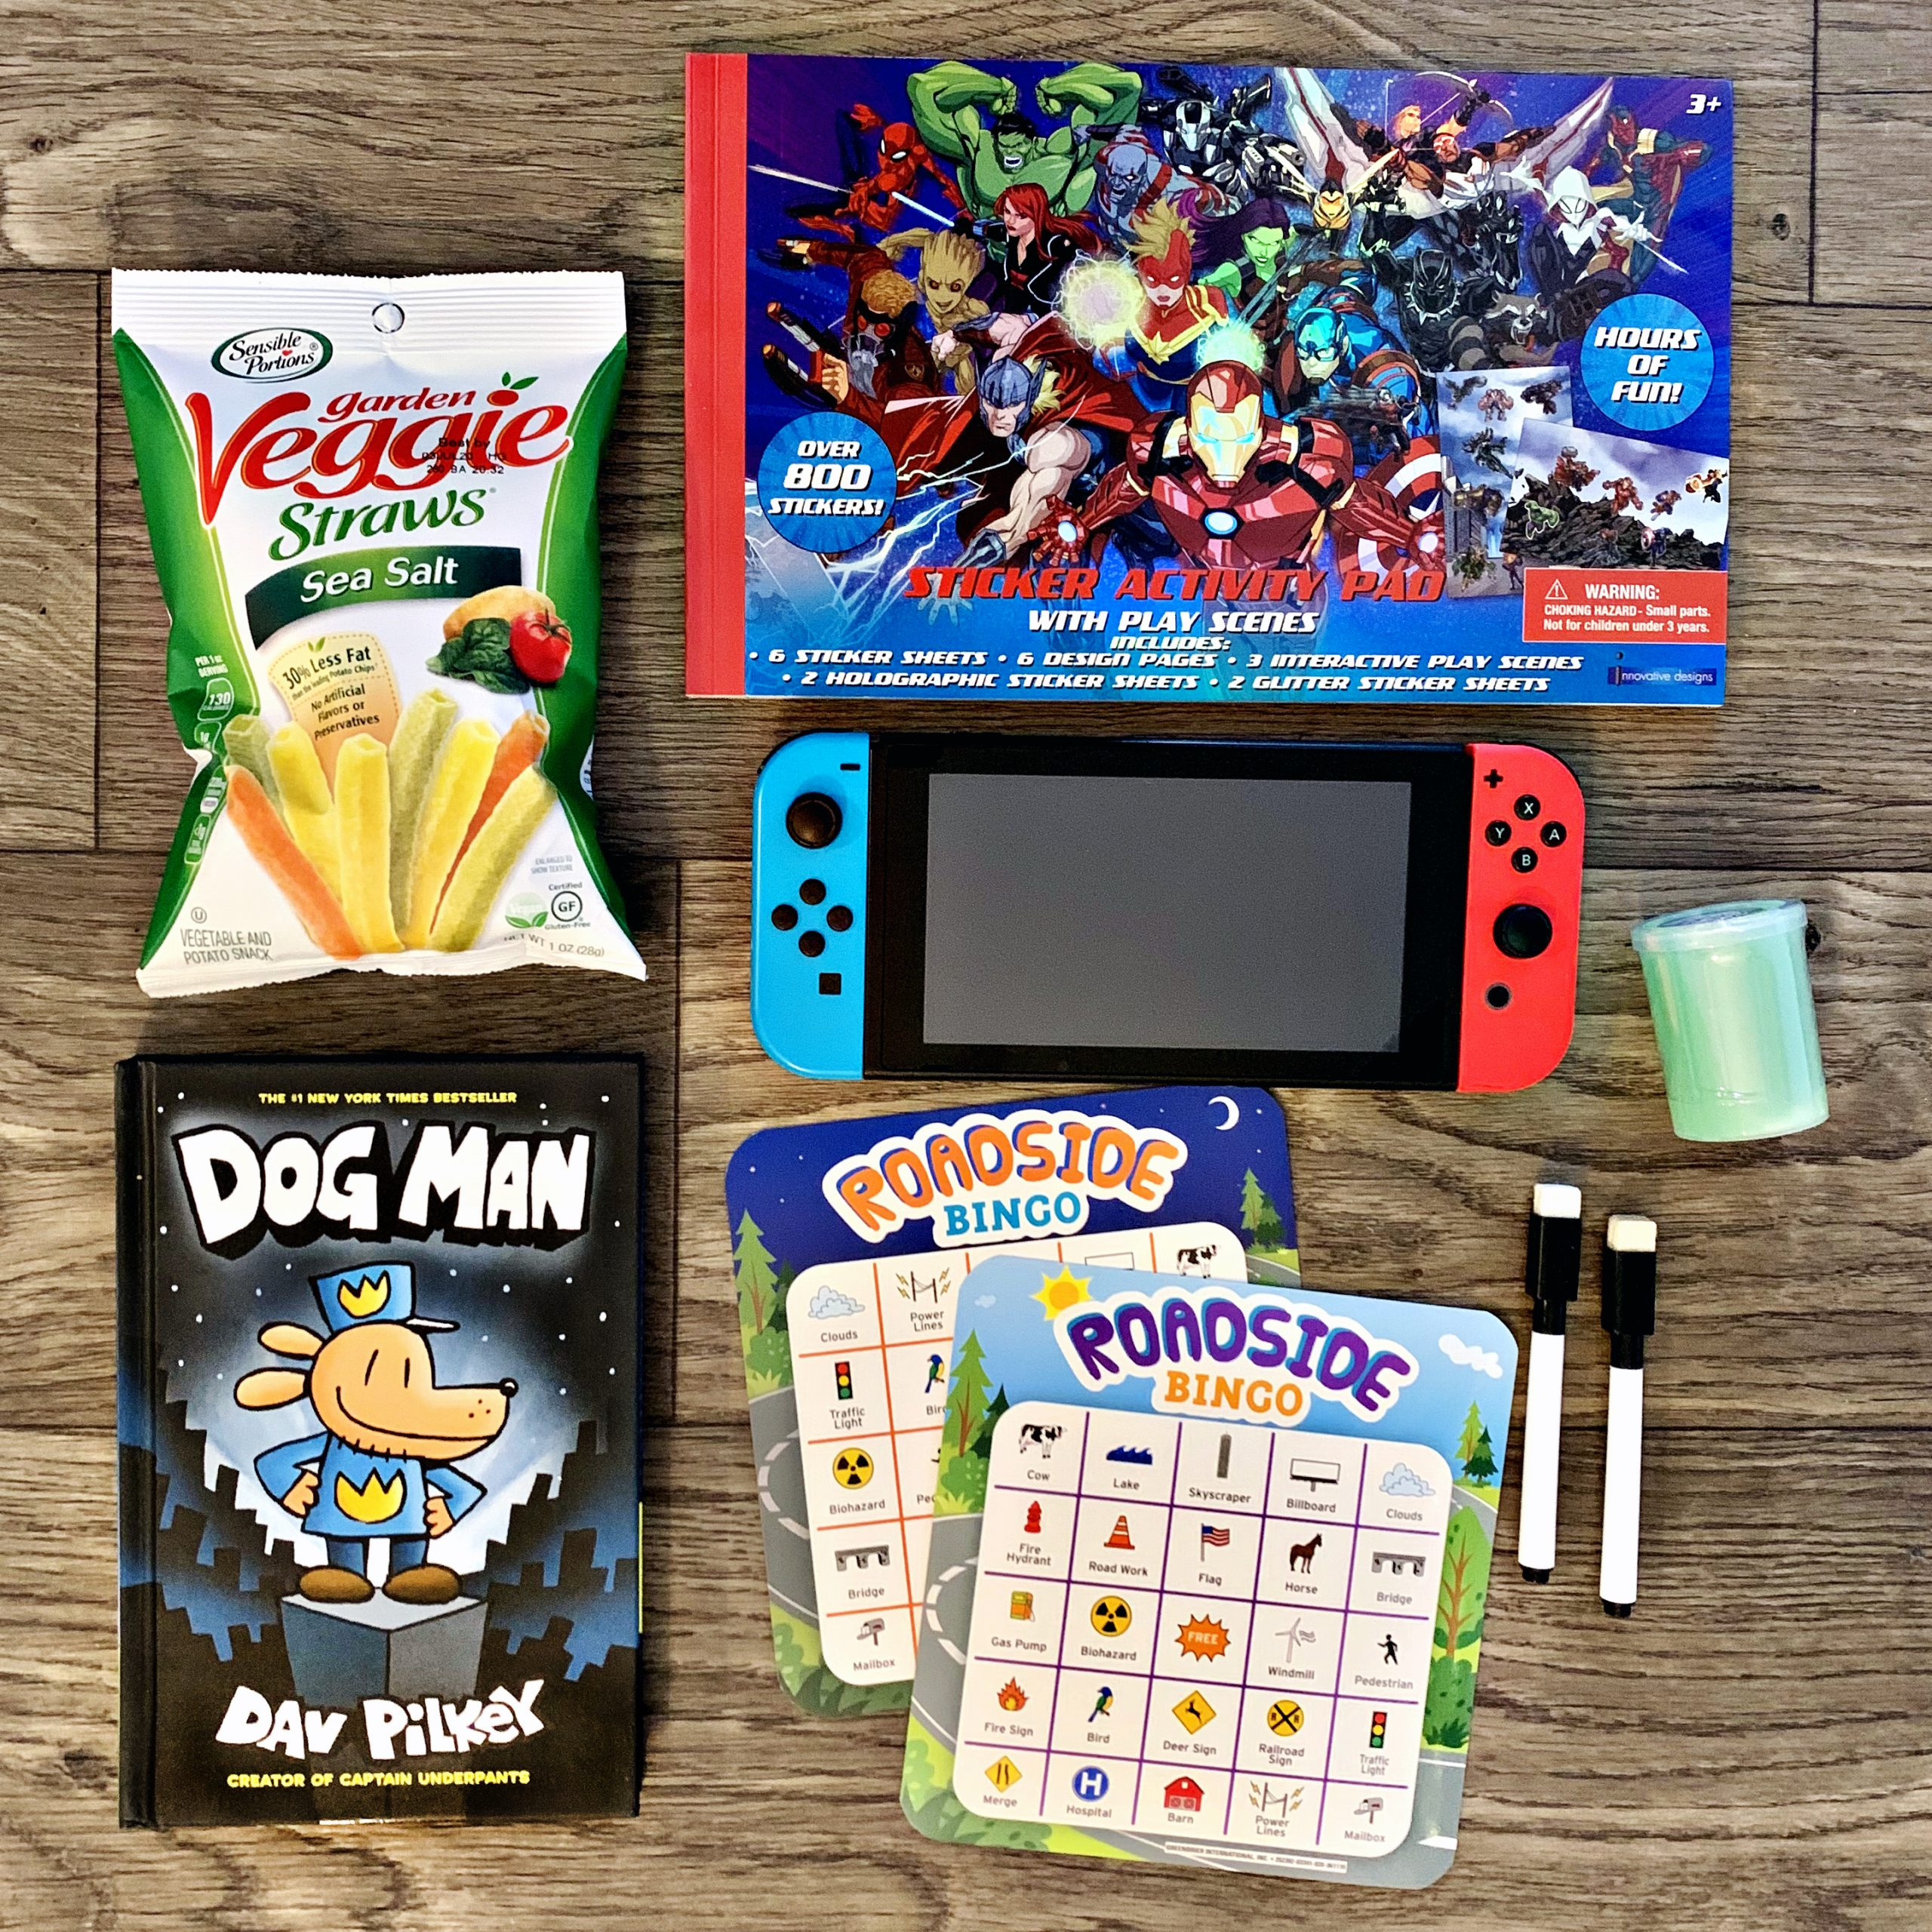 Items for traveling with big kids. Photo includes a personal bag of Sensible Portions® Garden Veggie Straws, a Marvel-themed Sticker activity pad, a Nintendo Switch, a Dog Man book, glow-in-the-dark slime, and Roadside Bingo activity.